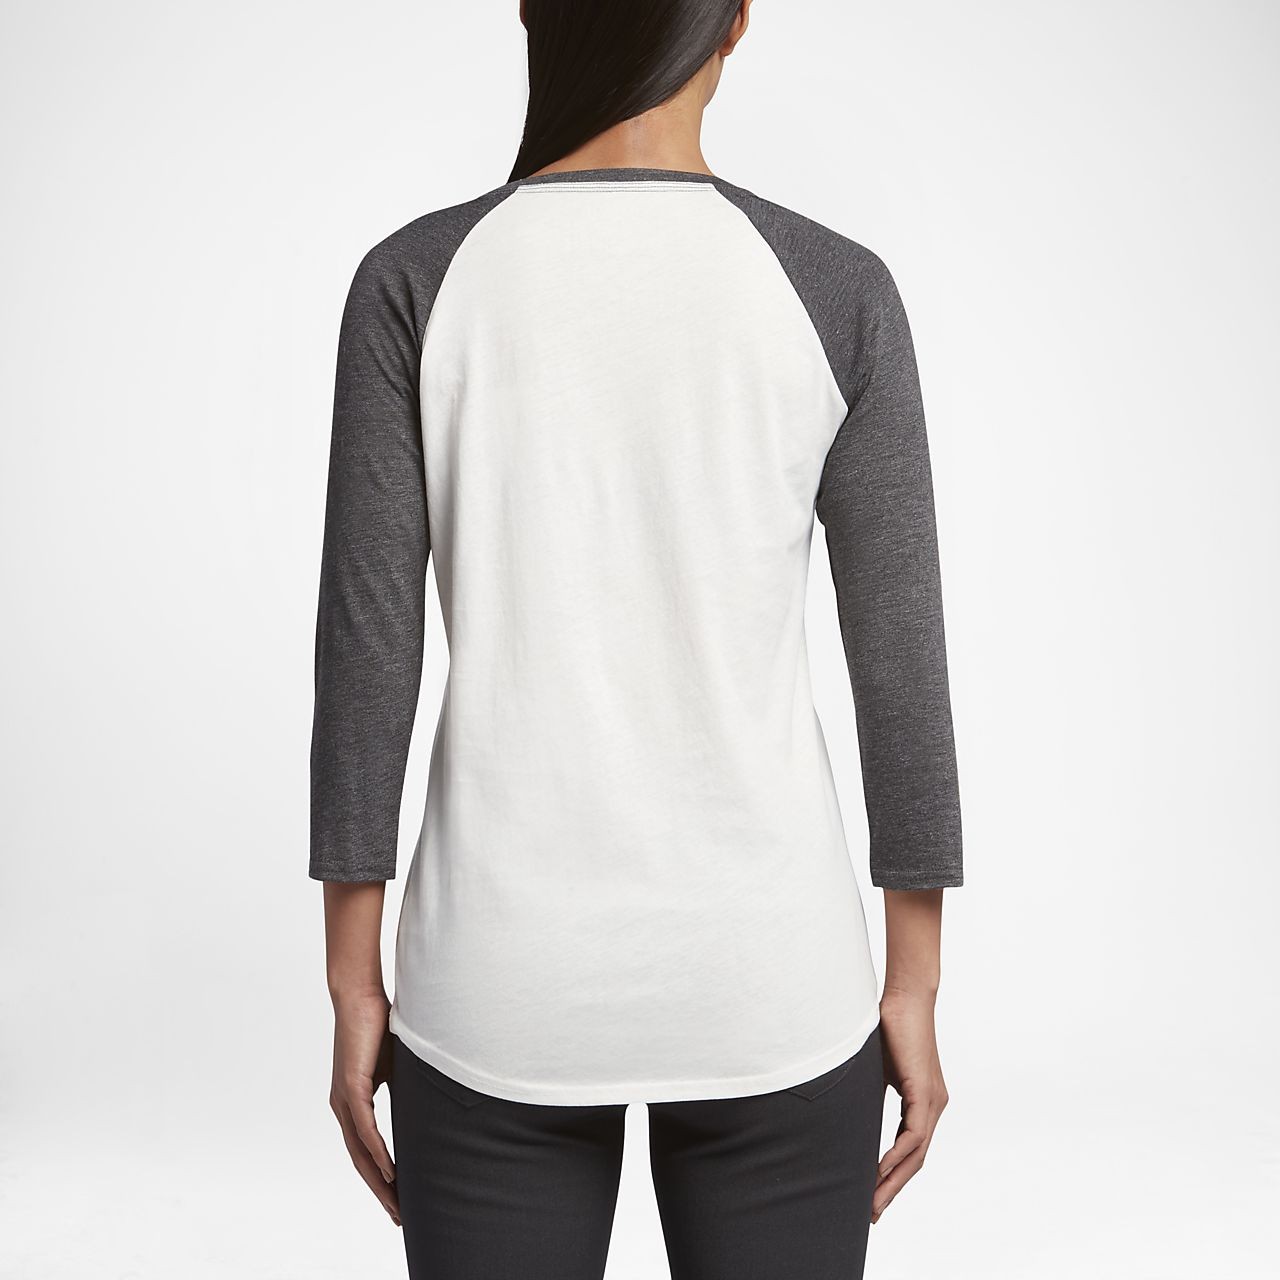 Sanford Shapes: 3/4 Raglan | Baseball Tee – Sanford Shapes